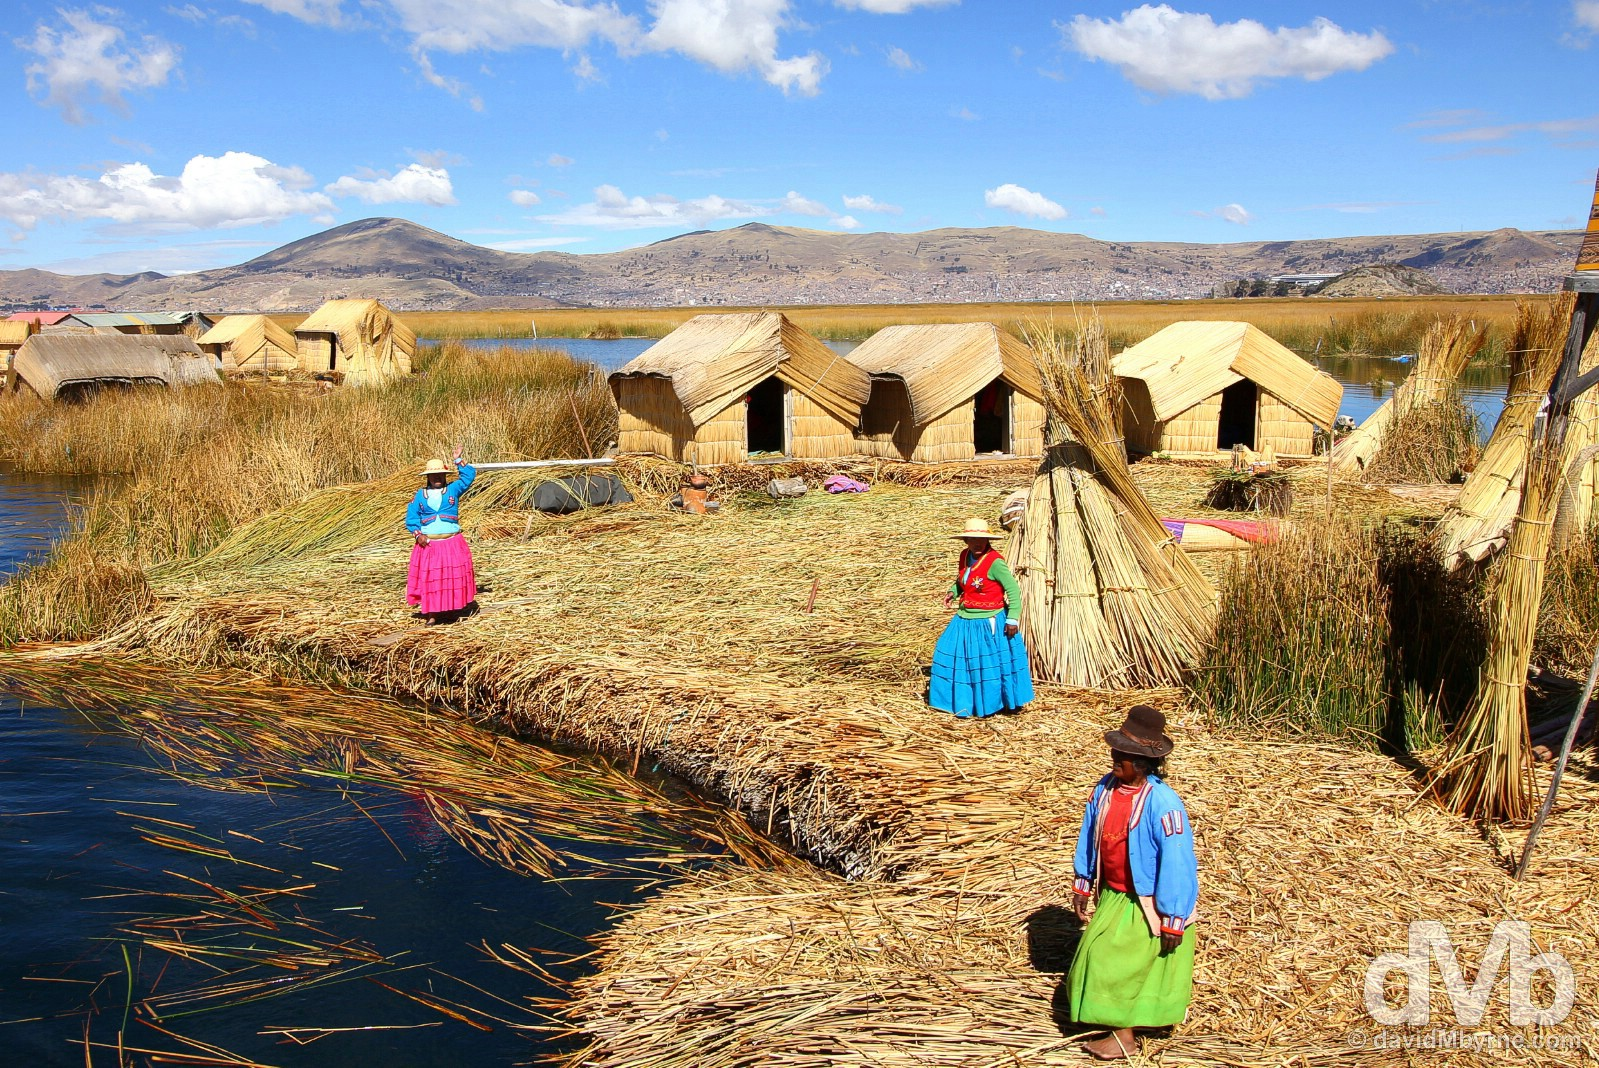 The welcome committee on the floating Uros Islands, Lake Titicaca, Peru. August 19, 2015.